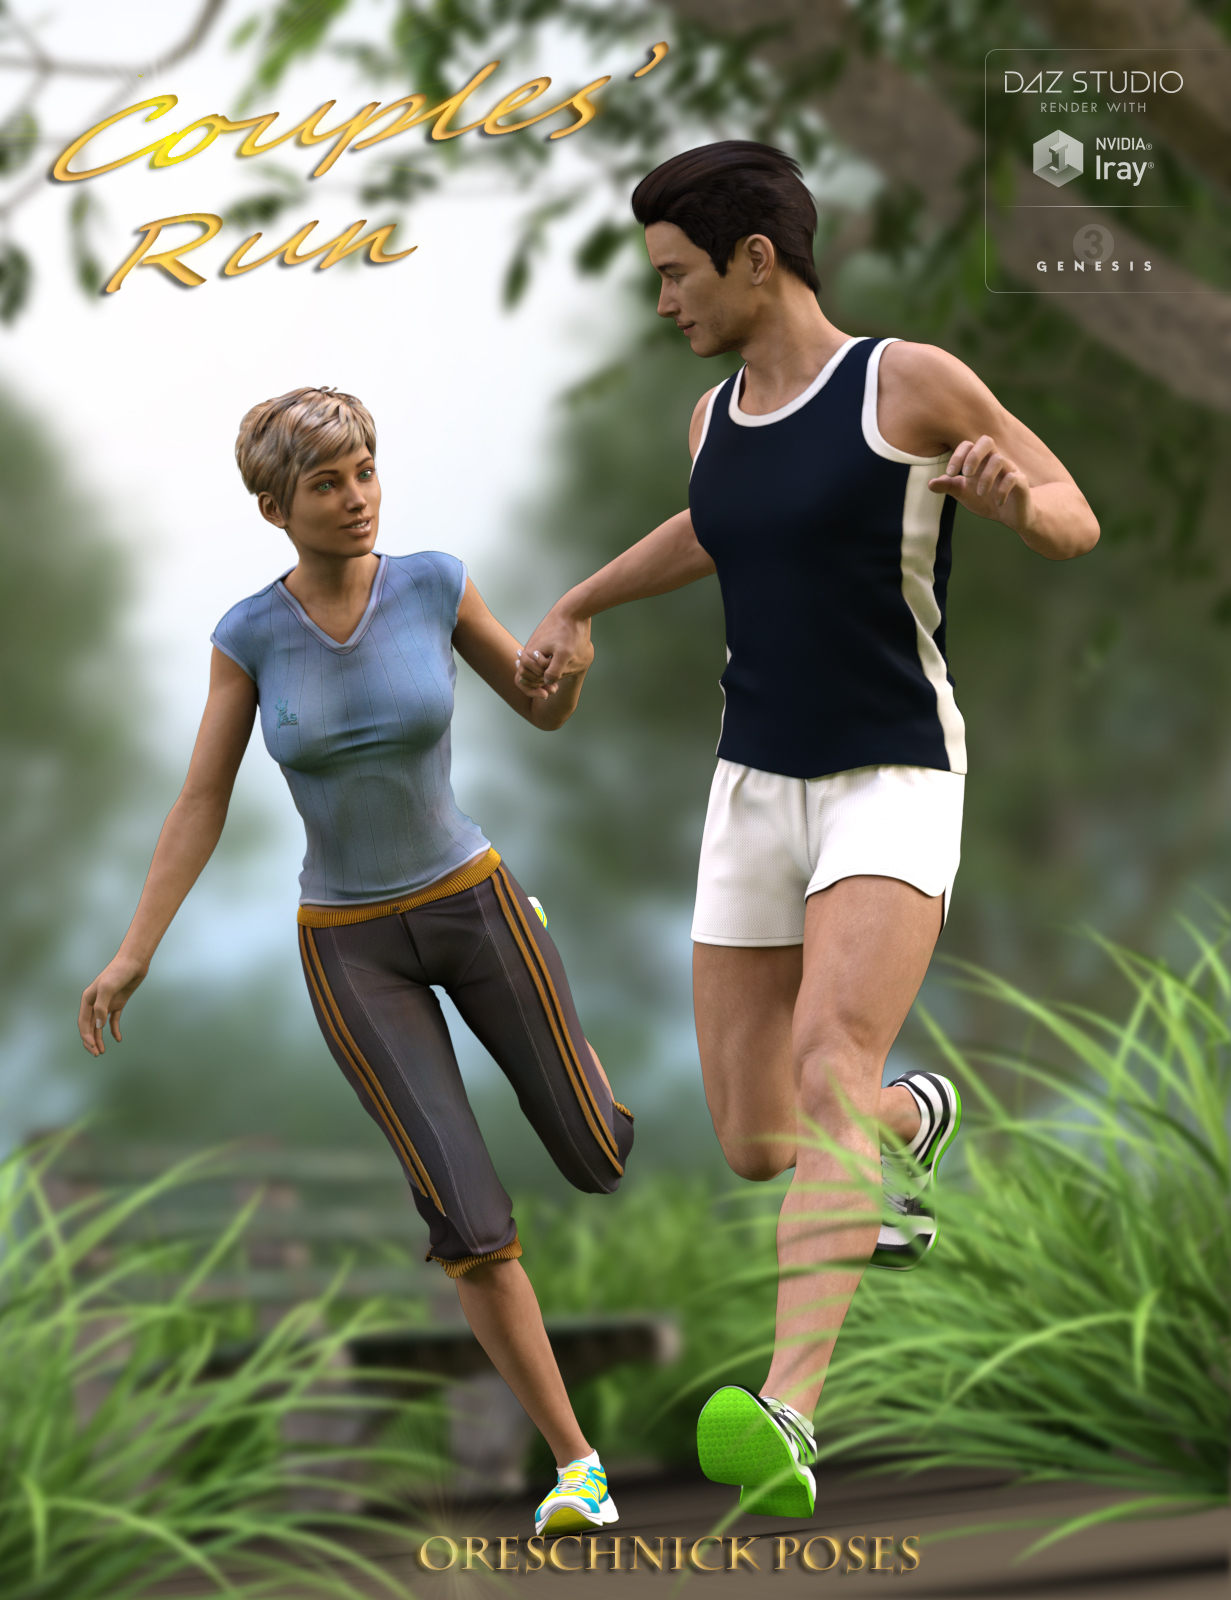 Couples' Run Poses by: Devon, 3D Models by Daz 3D